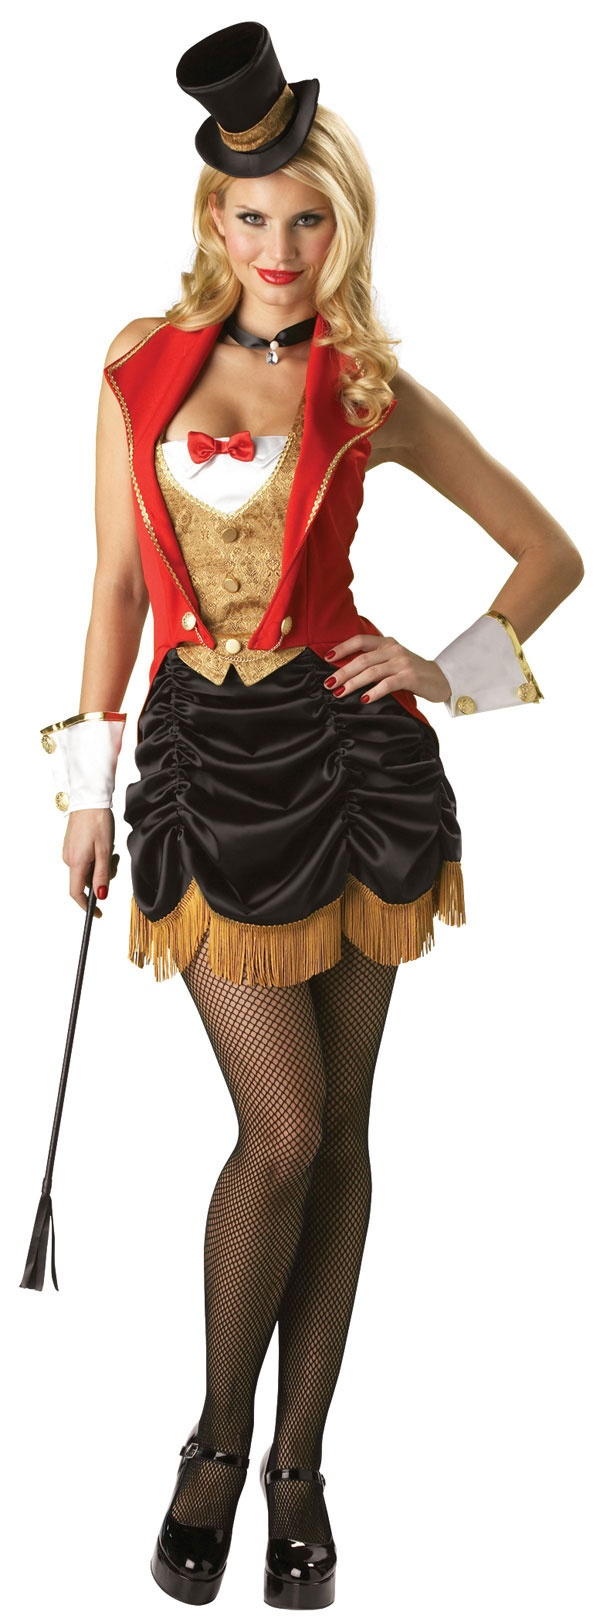 """I'm usually not a fan of the """"it's halloween so I can dress like a skank-costumes"""".. but this one's at least cute."""